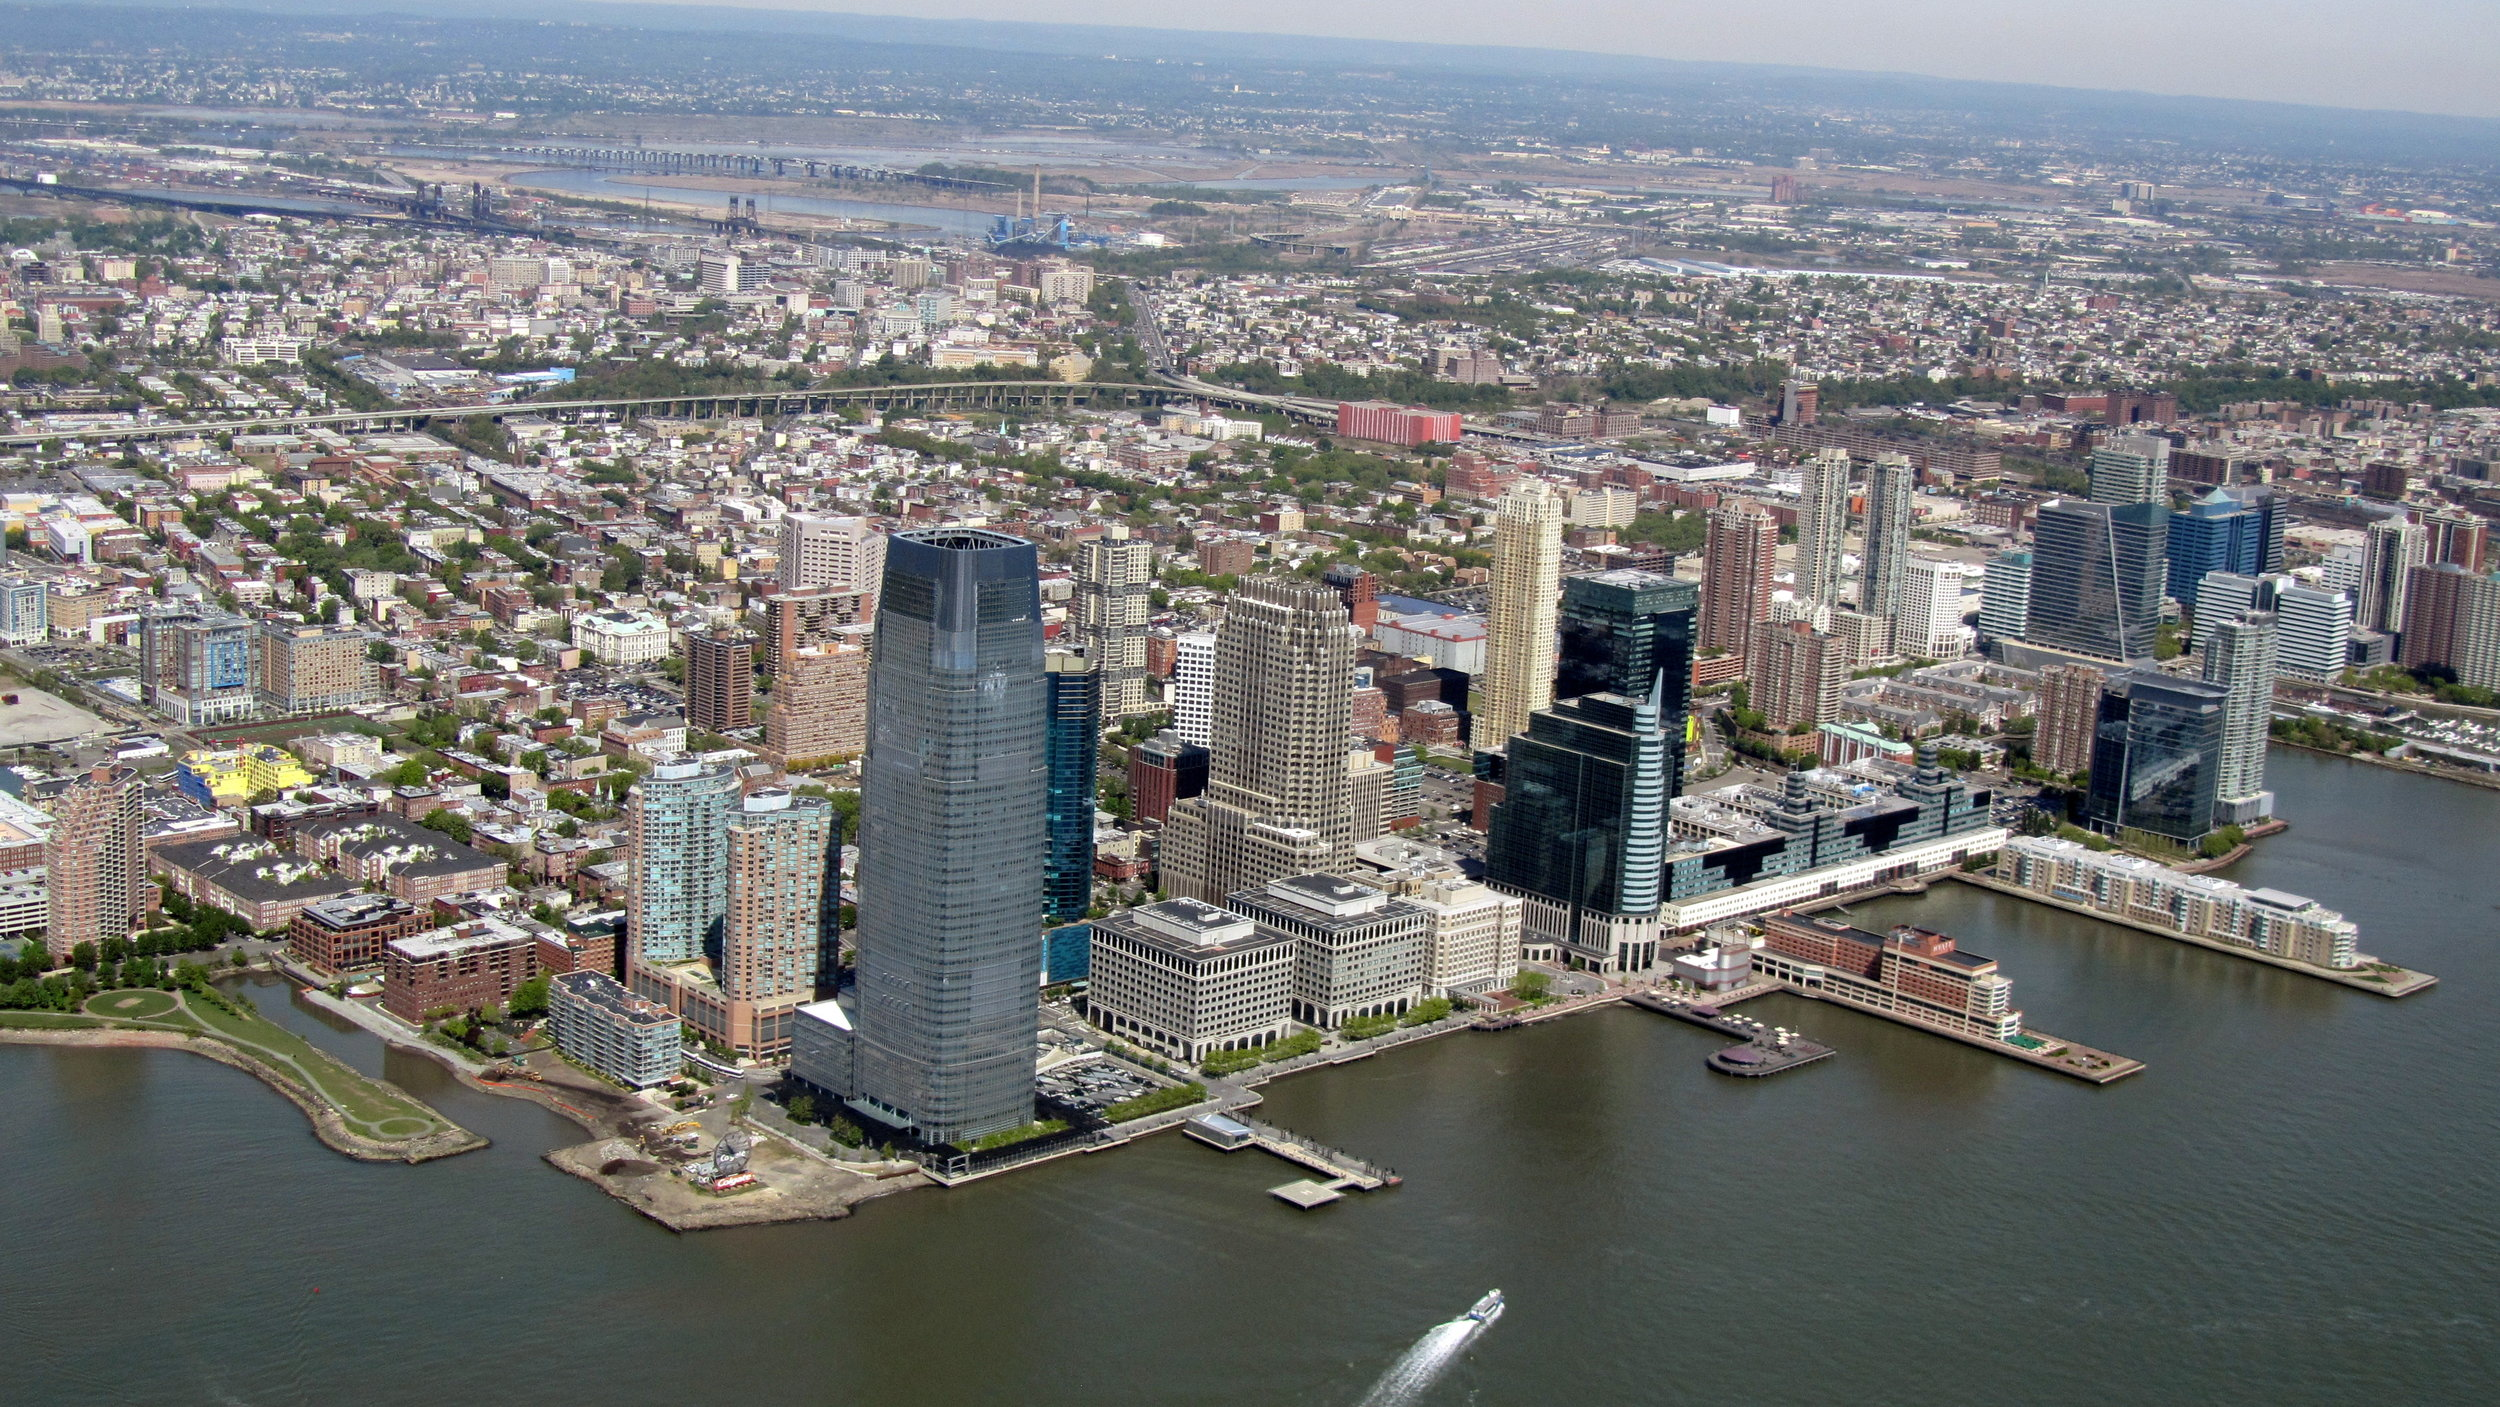 Jersey_City_from_a_helicopter.jpg